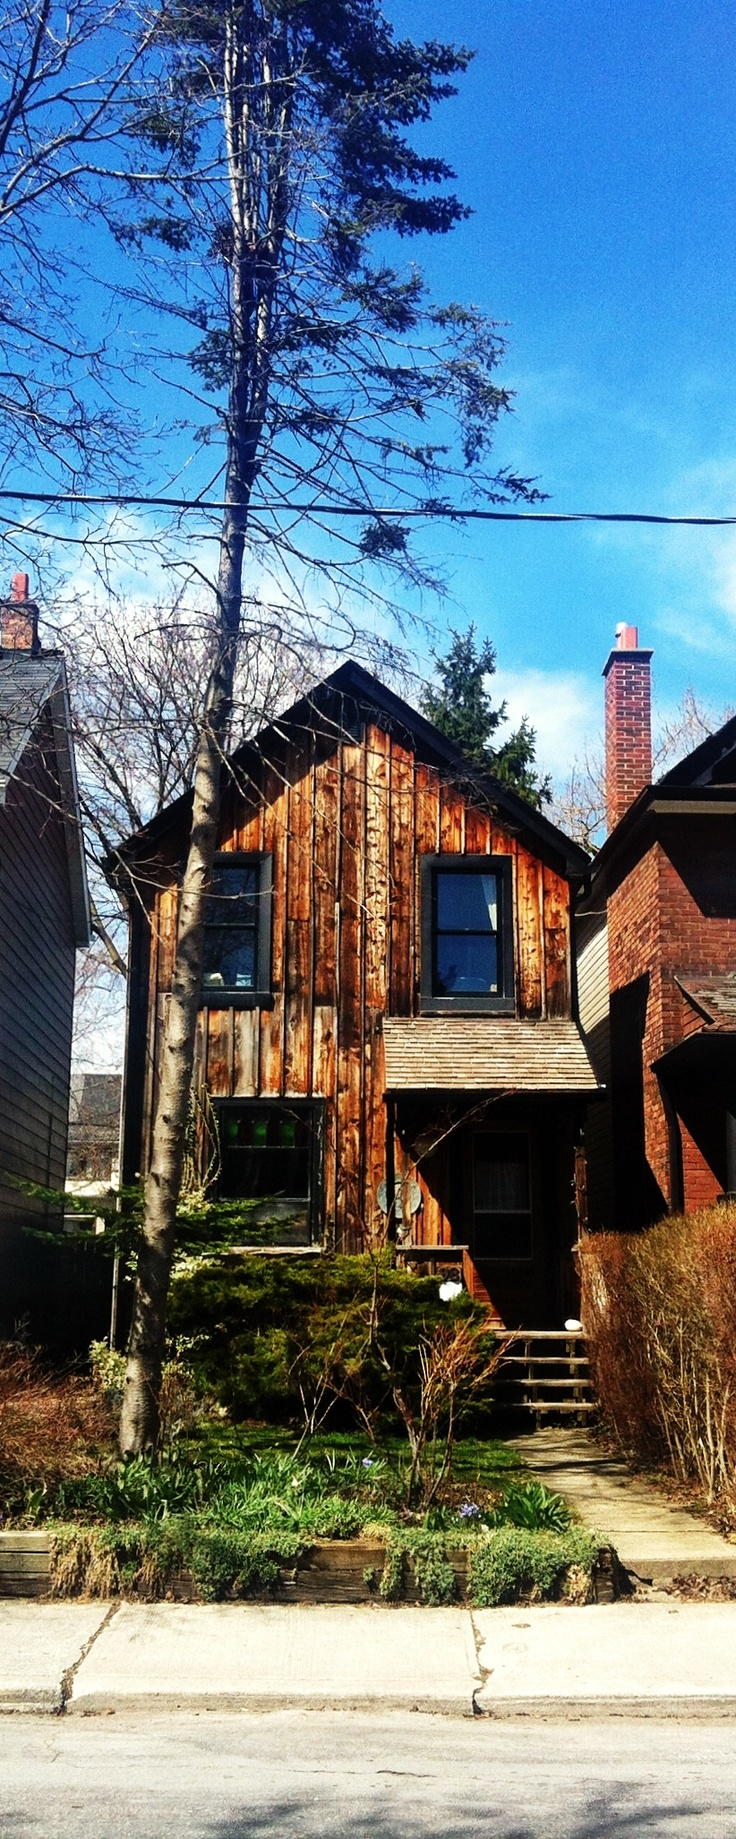 Broadview, Toronto. Cabin in the City.